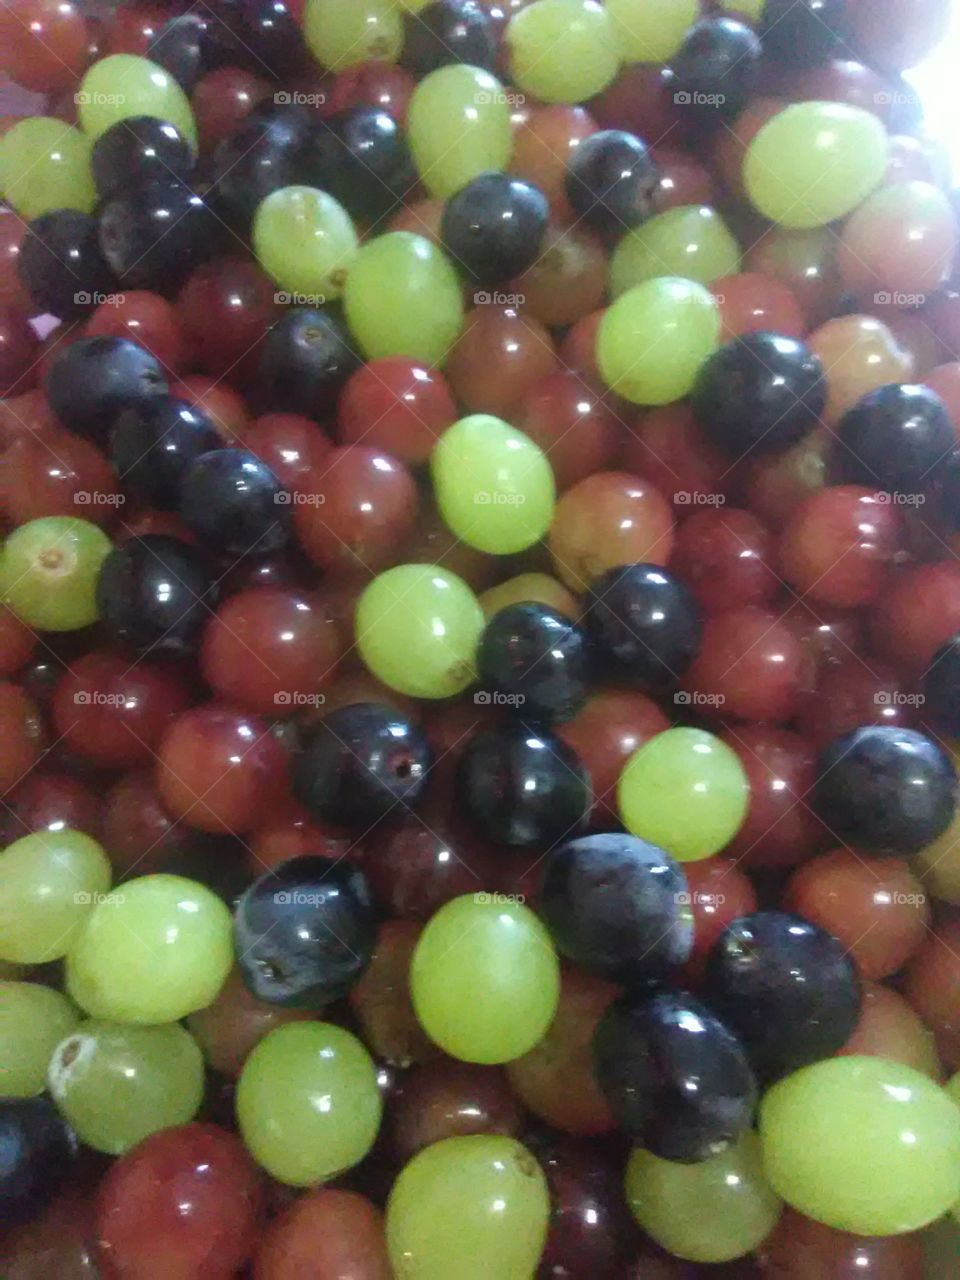 a beautiful vairity of purple and white grapes so freaking fresh and delicious 👌😍